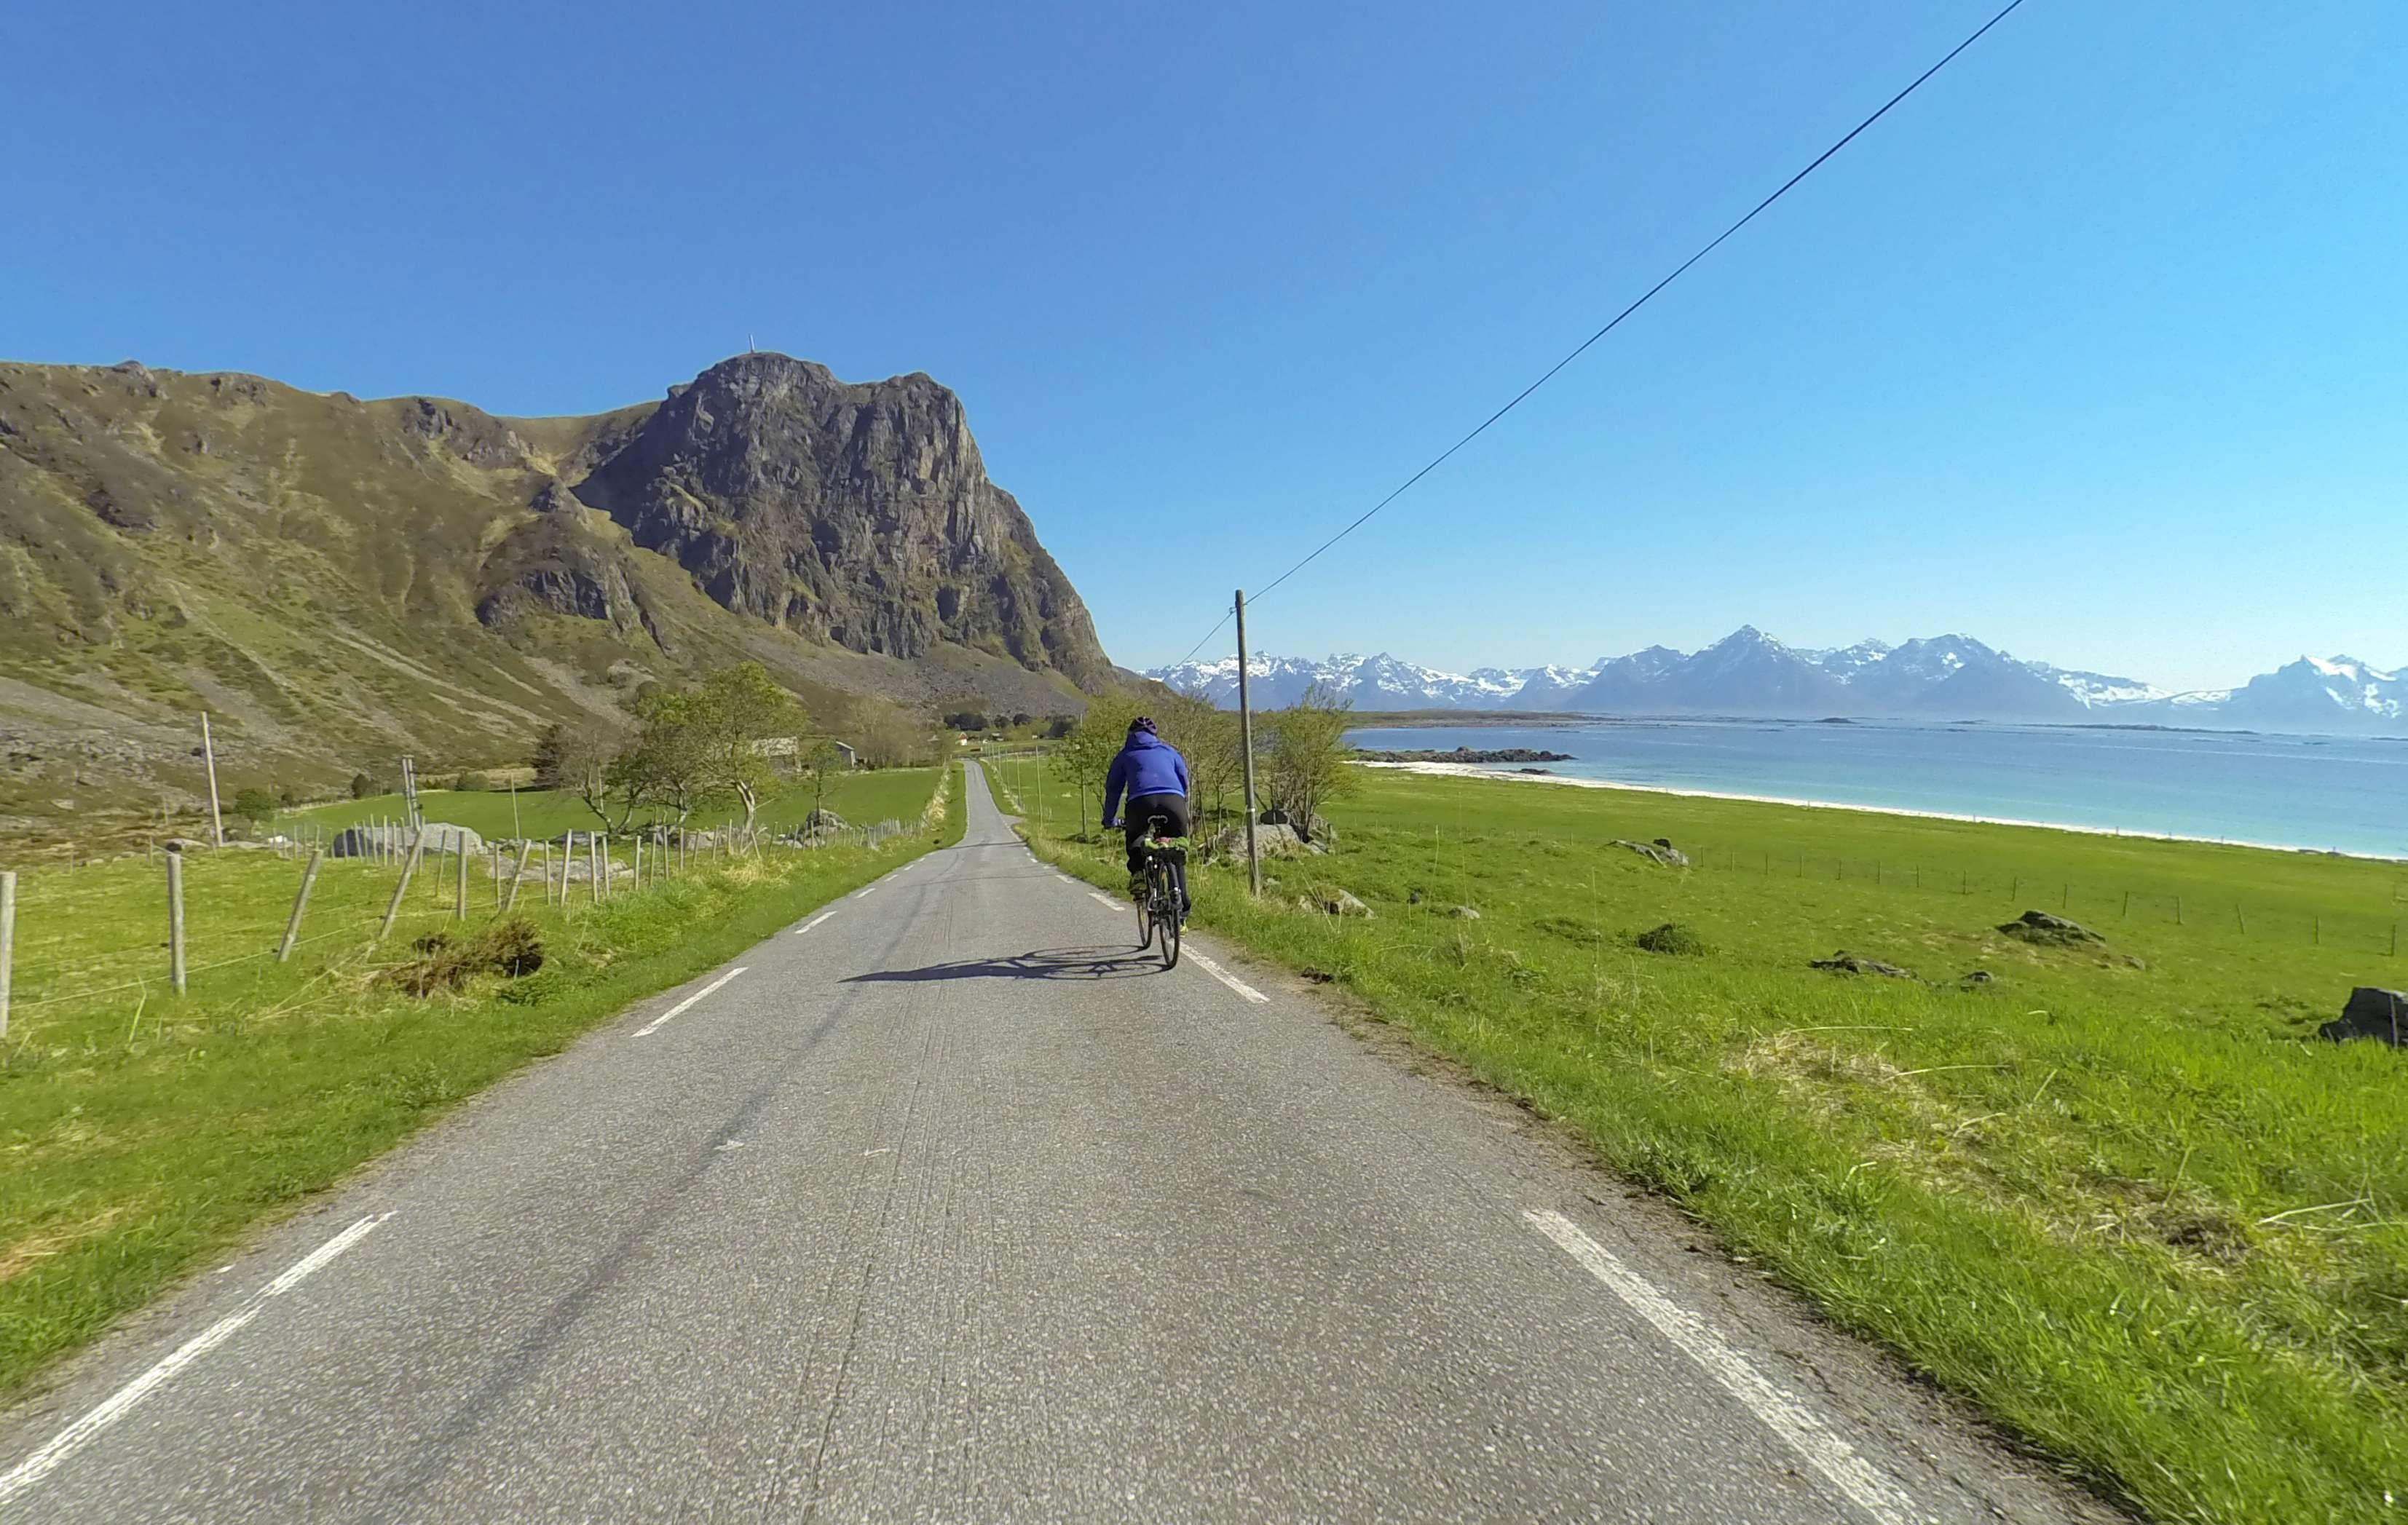 Bike rental - Discover vesterålen by bike